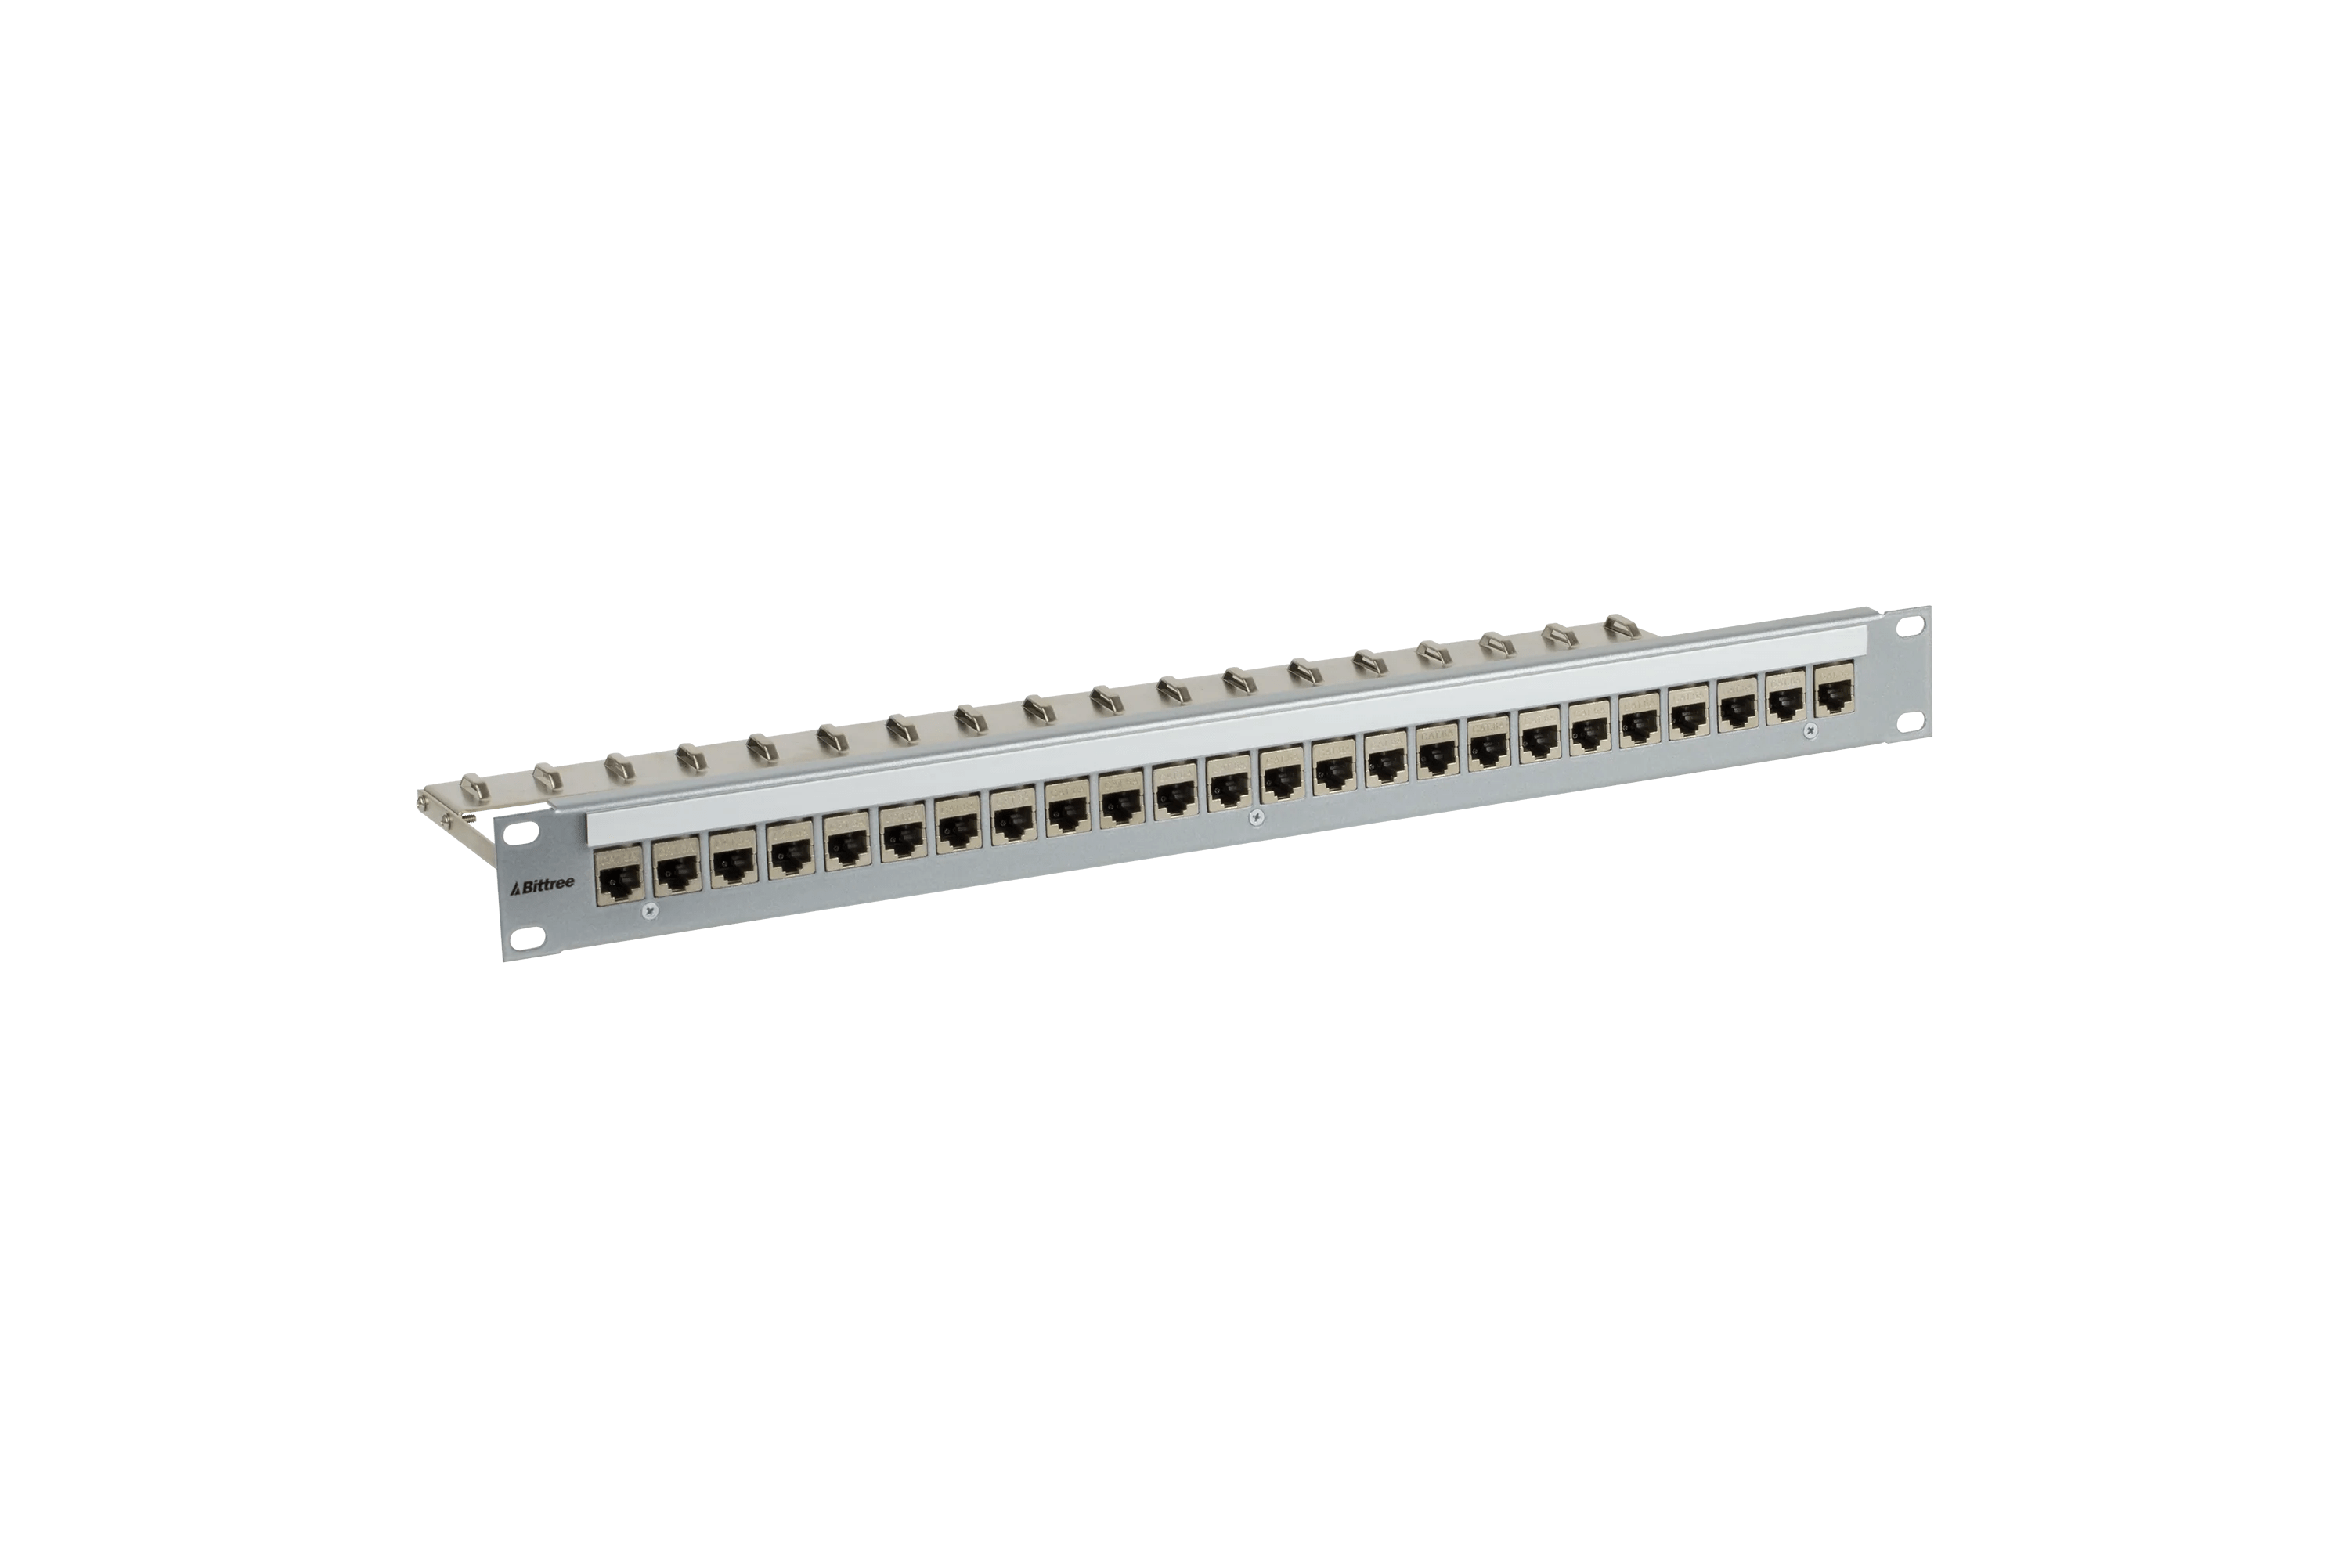 flush mount modular keystone panel cat 6a 110 punchdown shielded 1x24  [ 3000 x 2003 Pixel ]